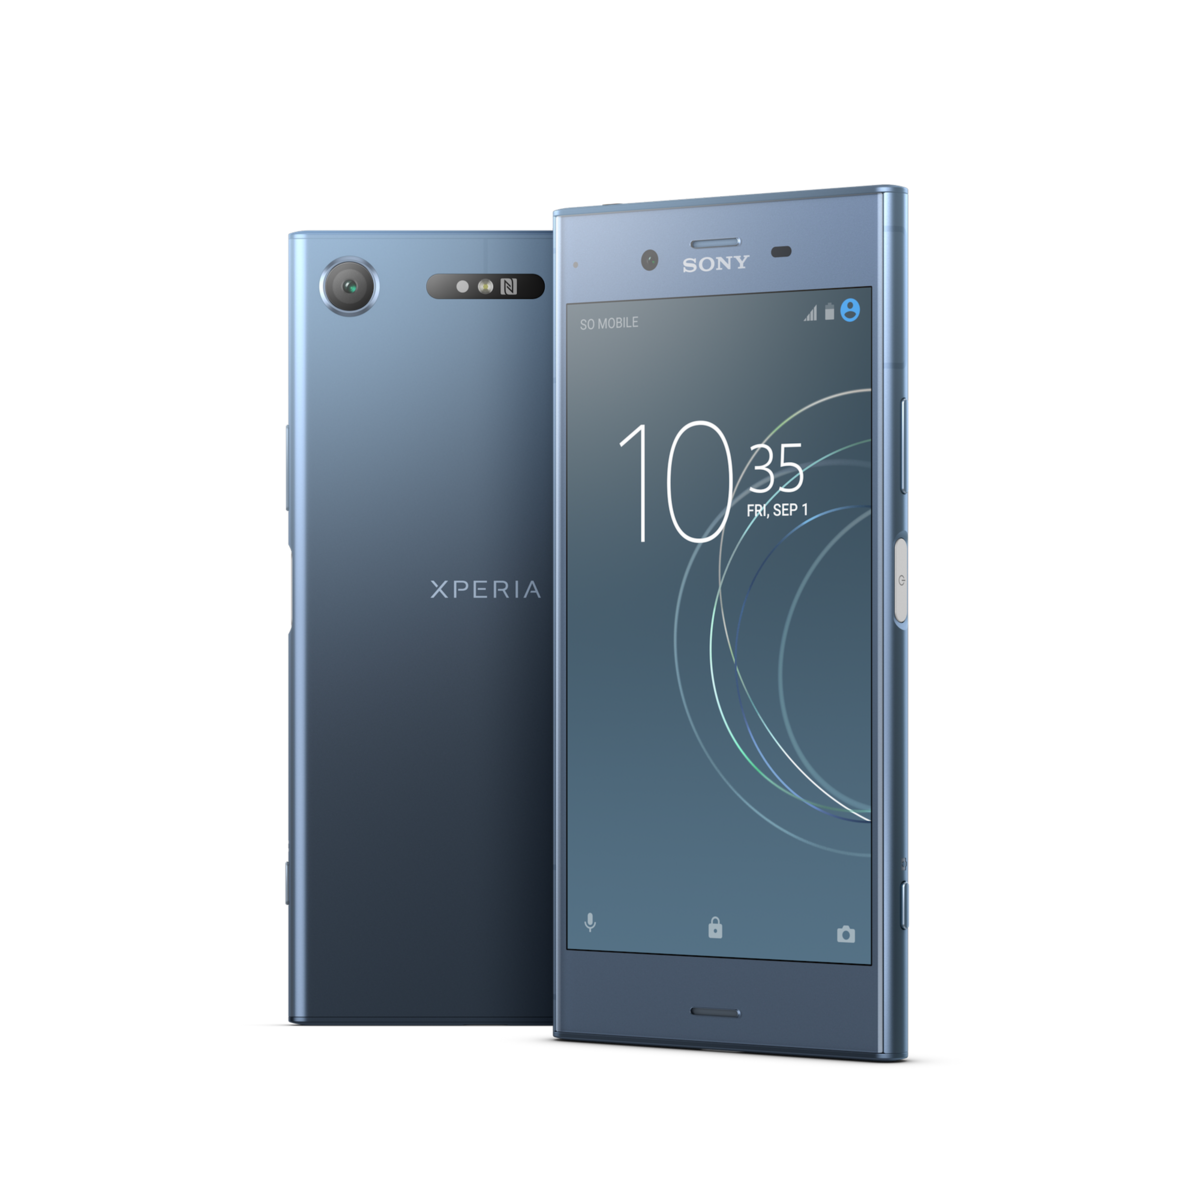 Xperia missing from mysterious Sony MWC 2018 teaser - NotebookCheck